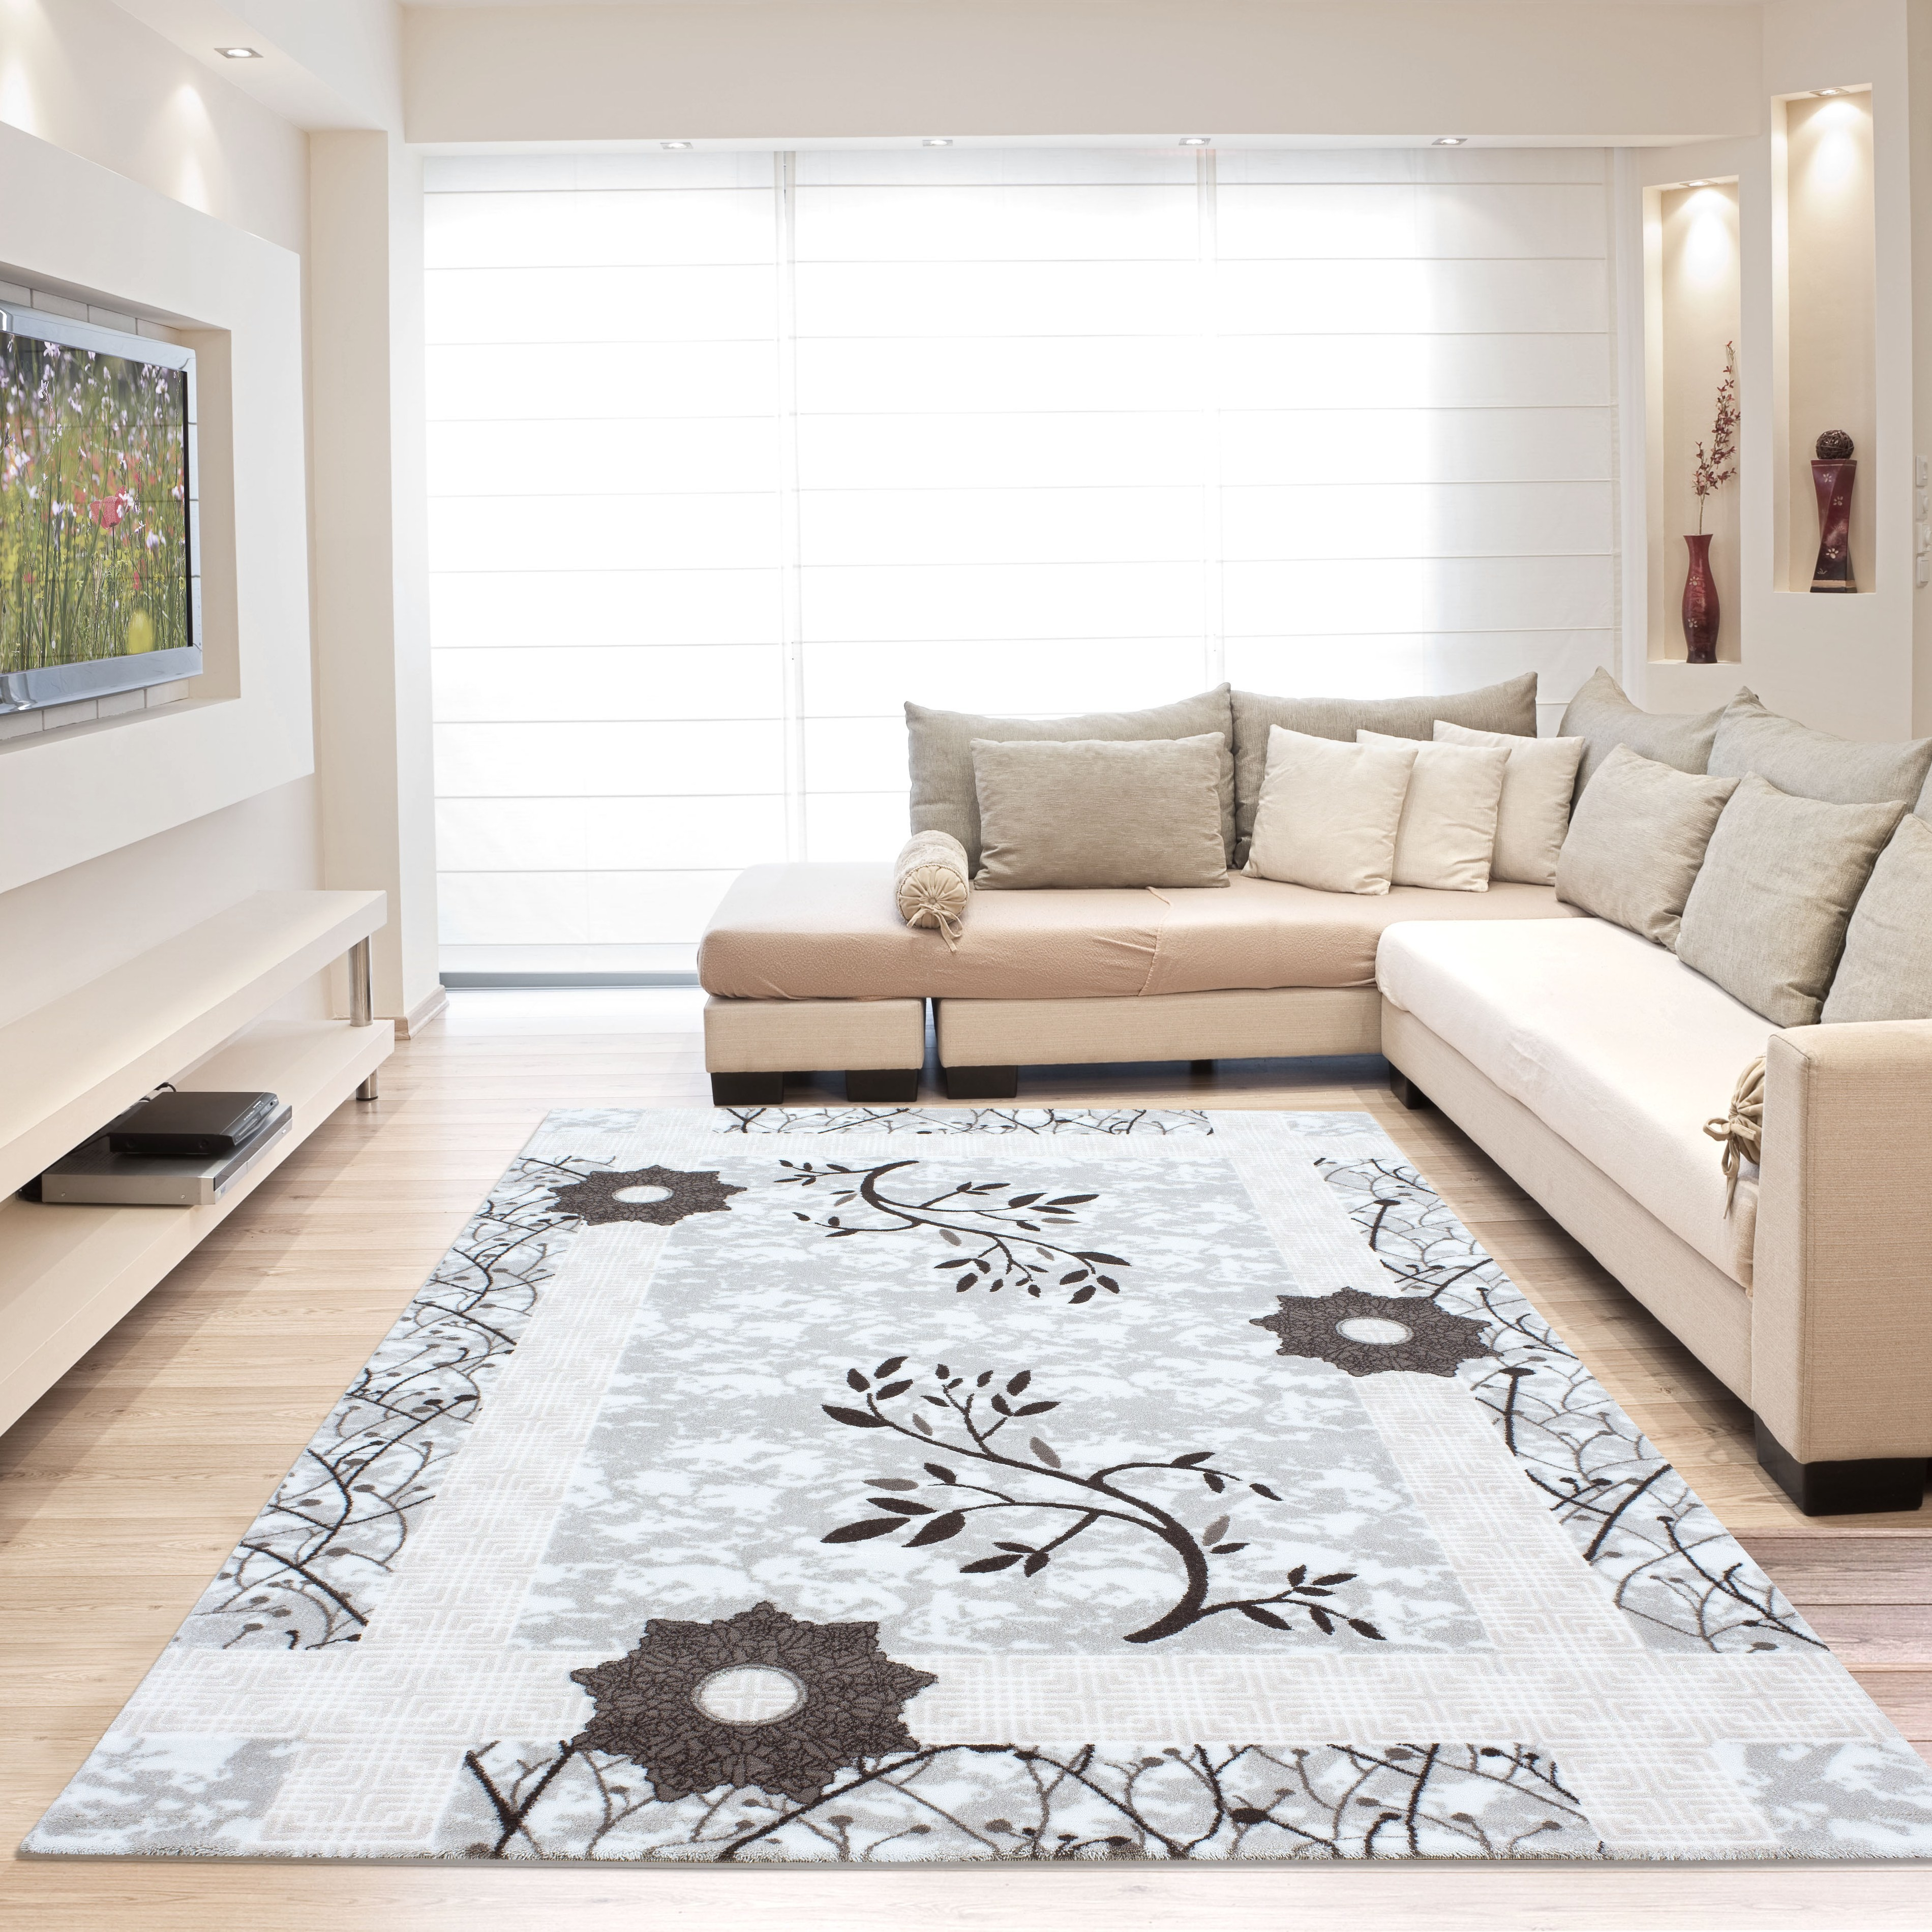 Tapis contemporain en acrylique marron home corsa 3 pas cher for Tapis salon contemporain